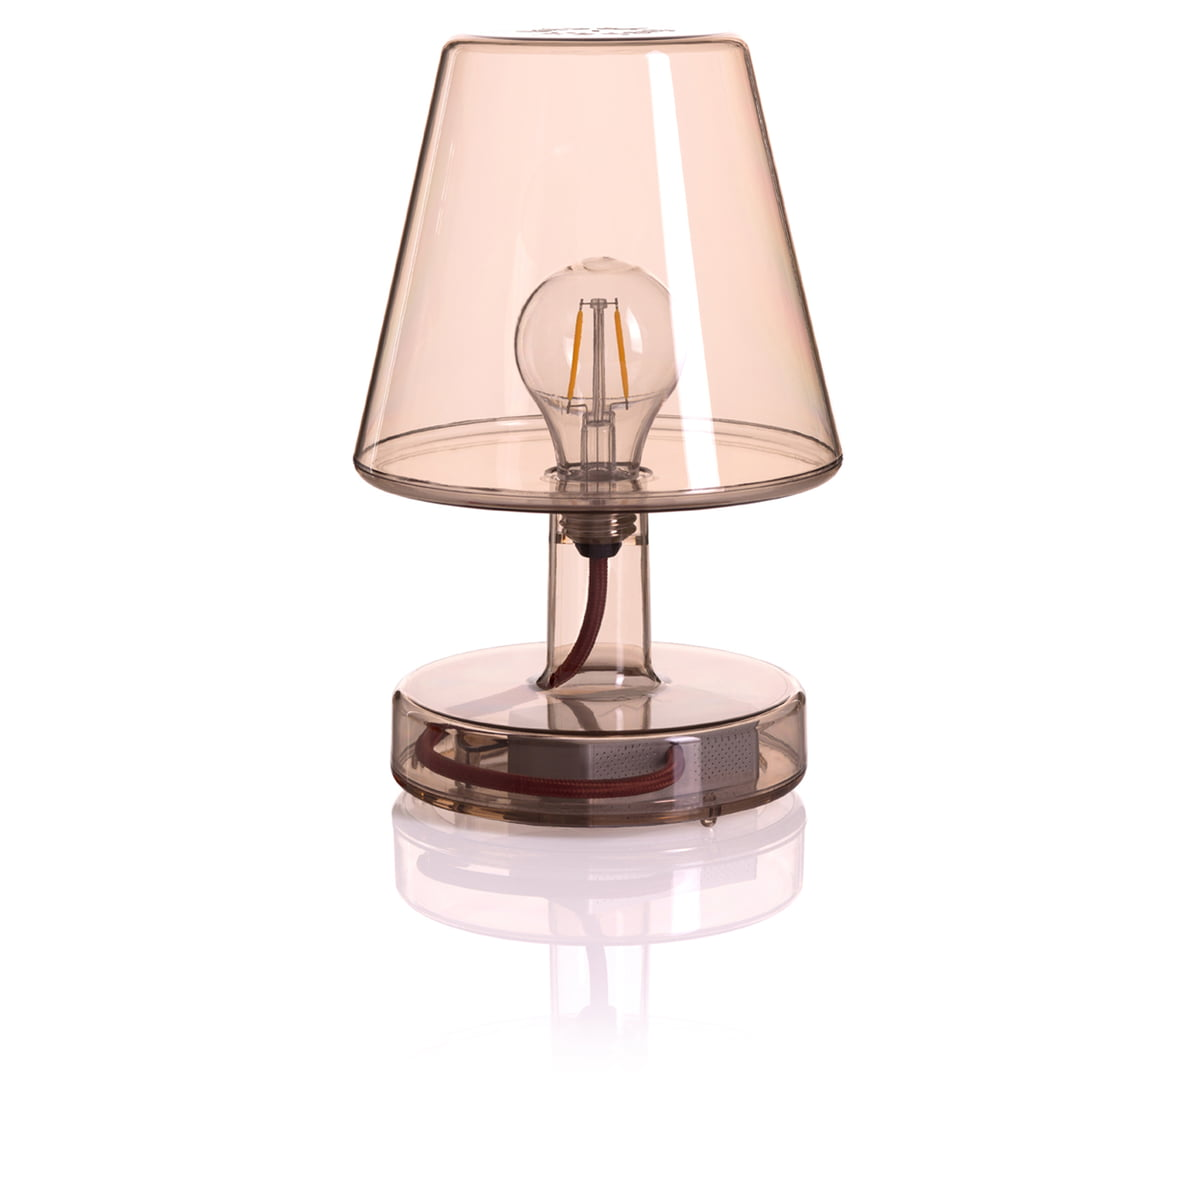 Transloetje table lamp by Fatboy in our shop